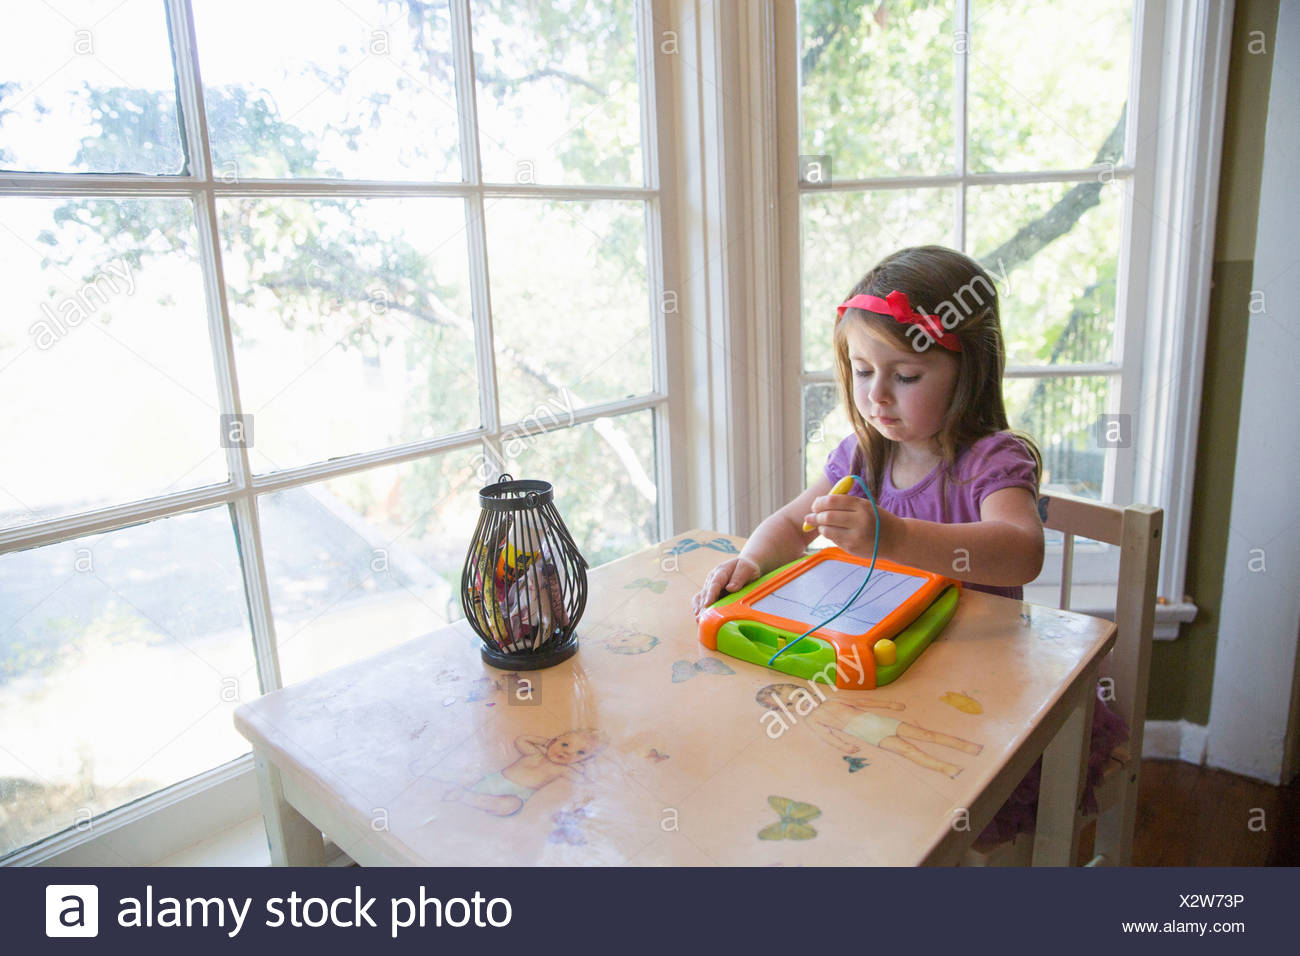 Girl drawing indoors - Stock Image